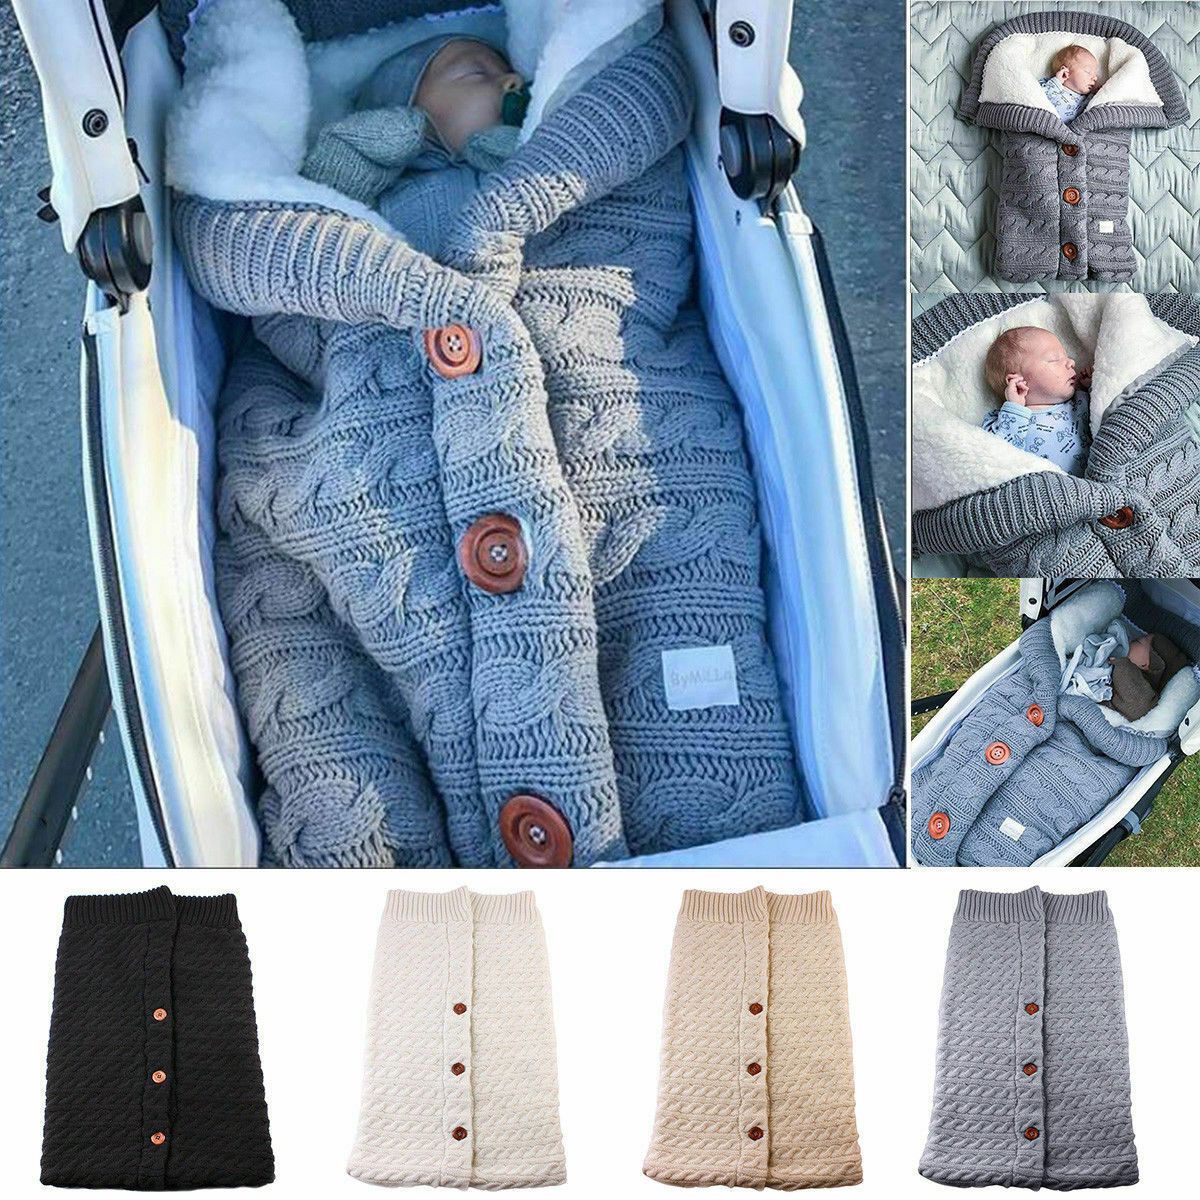 Baby Bunting Bag Cotton Warm Winter Infant Outdoor Bady Cart Clothes Button Knit Swaddle Wrap Stroller Toddler Blanket Sleep Bag